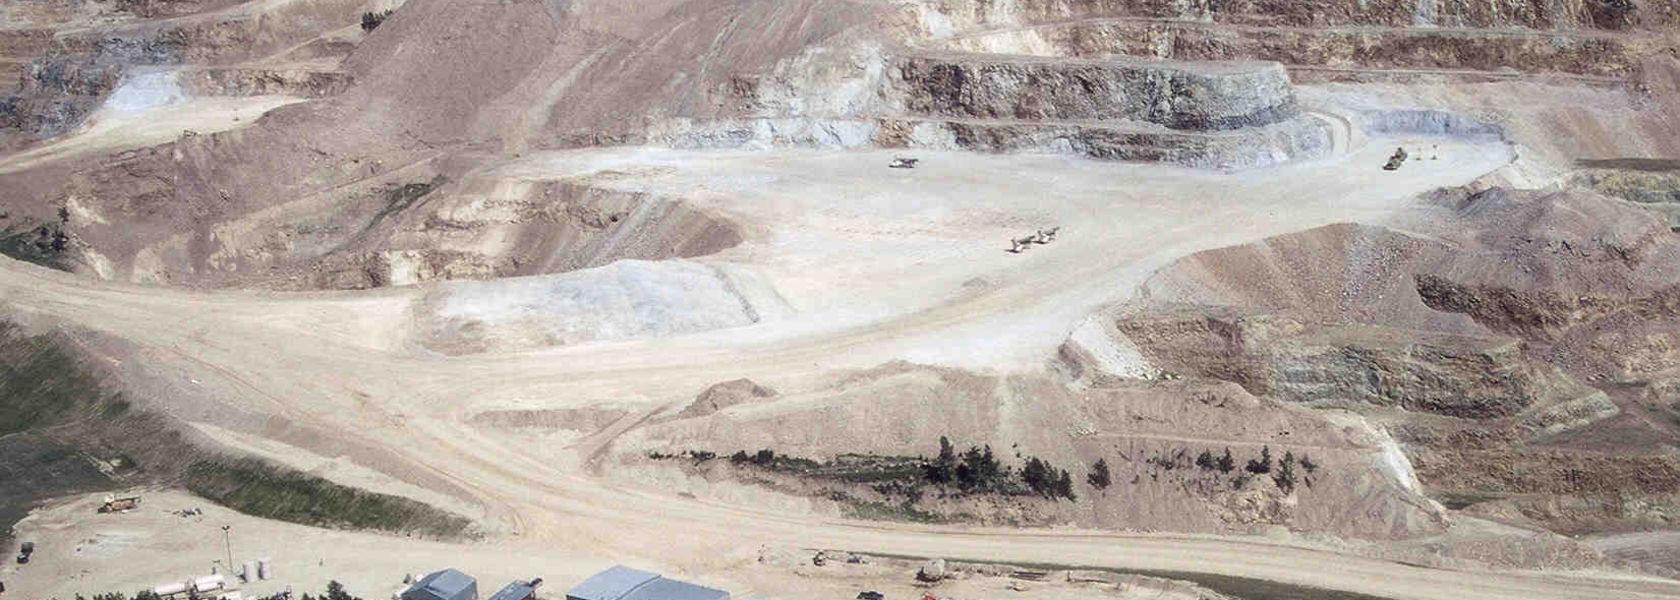 Self-assessment tool complements new mining standard